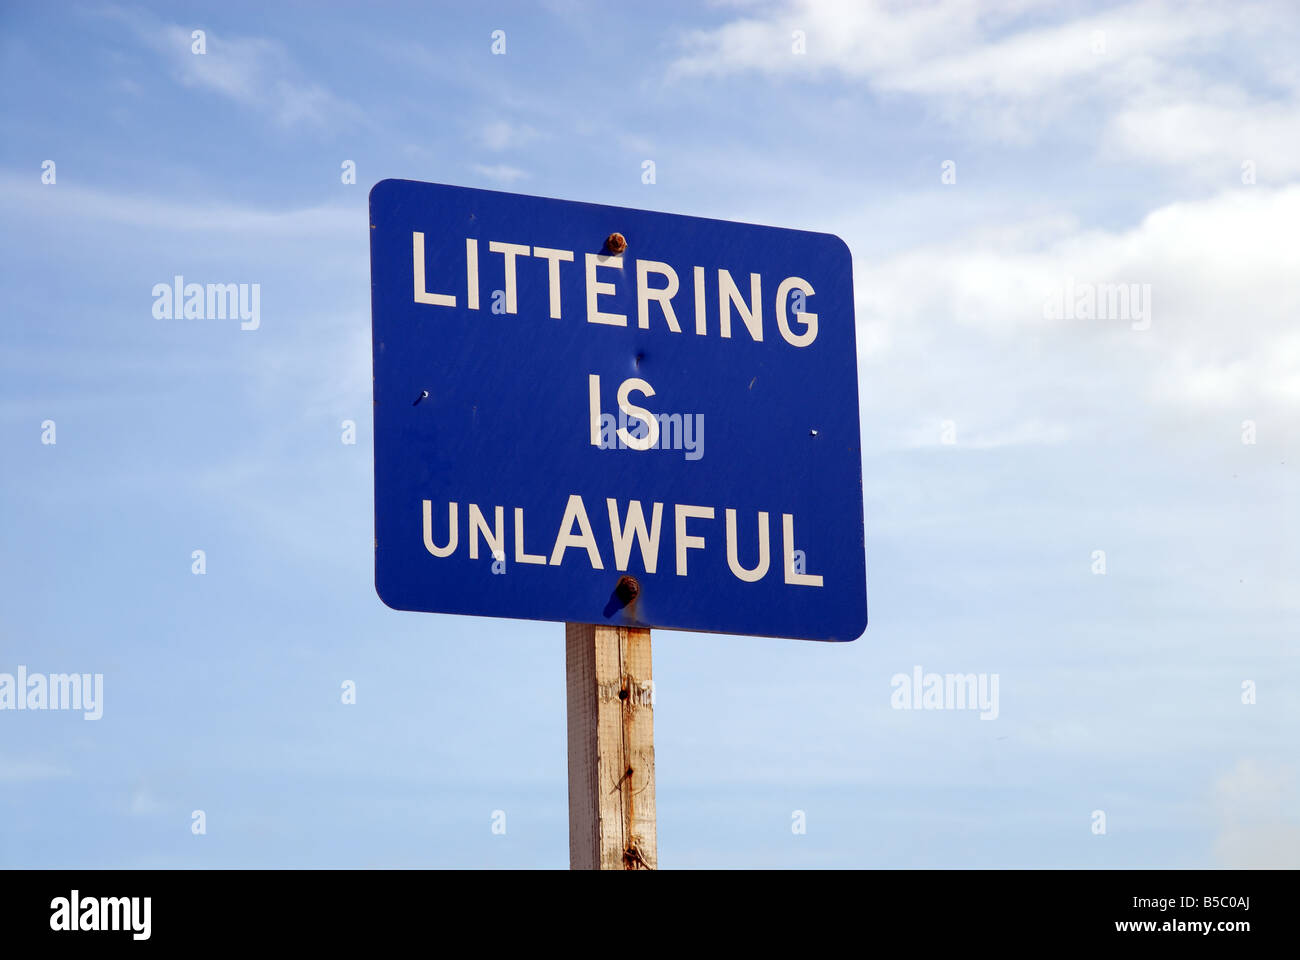 Littering is Unlawful sign in the United States - Stock Image